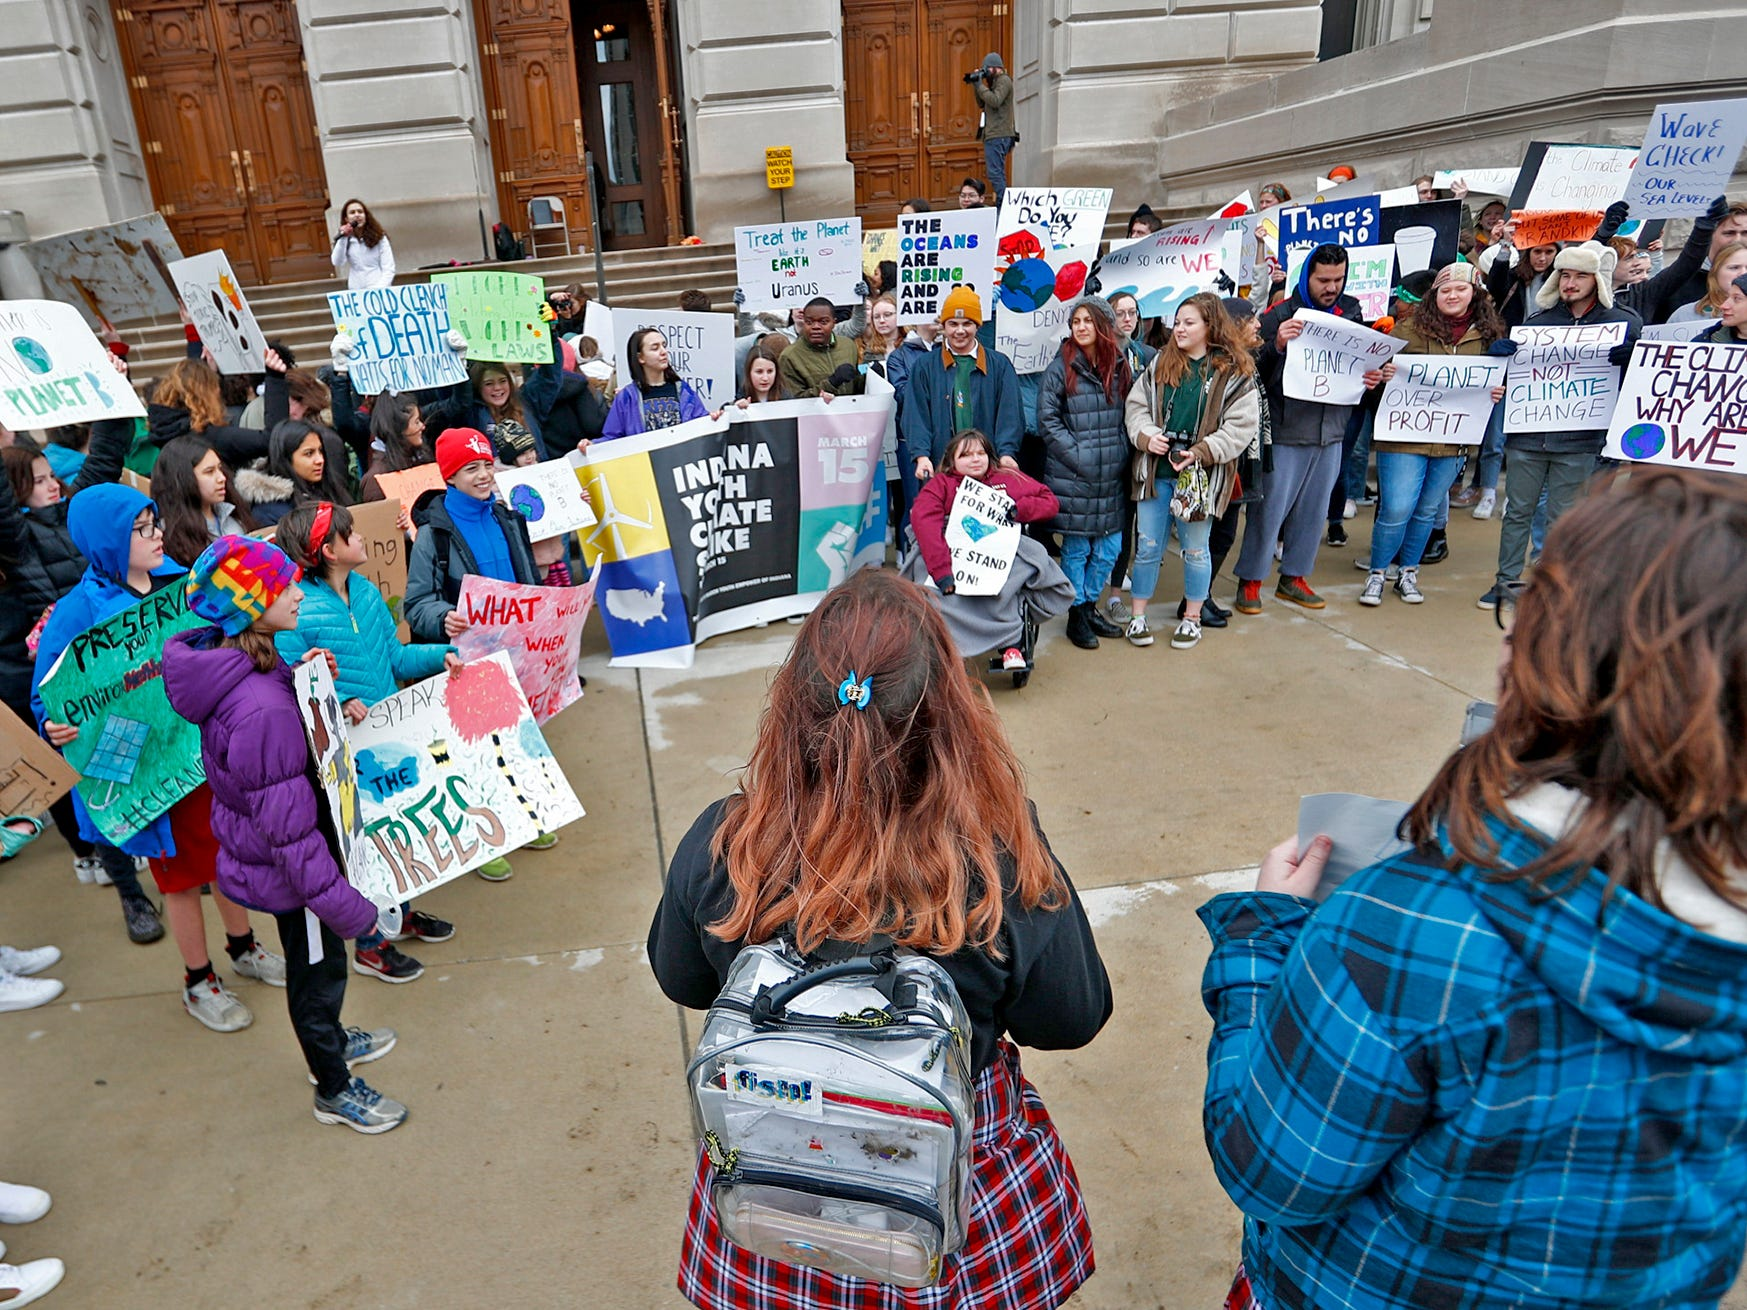 Students come together during the Indiana part of the international Climate Strike, Friday, March 15, 2019, held outside the Indiana Statehouse.  Following in the footsteps of 16-year-old Swedish trailblazer, Greta Thunberg, students around the world are skipping school to protest government inaction on climate change.  The Indiana protest brought over 250 participants.